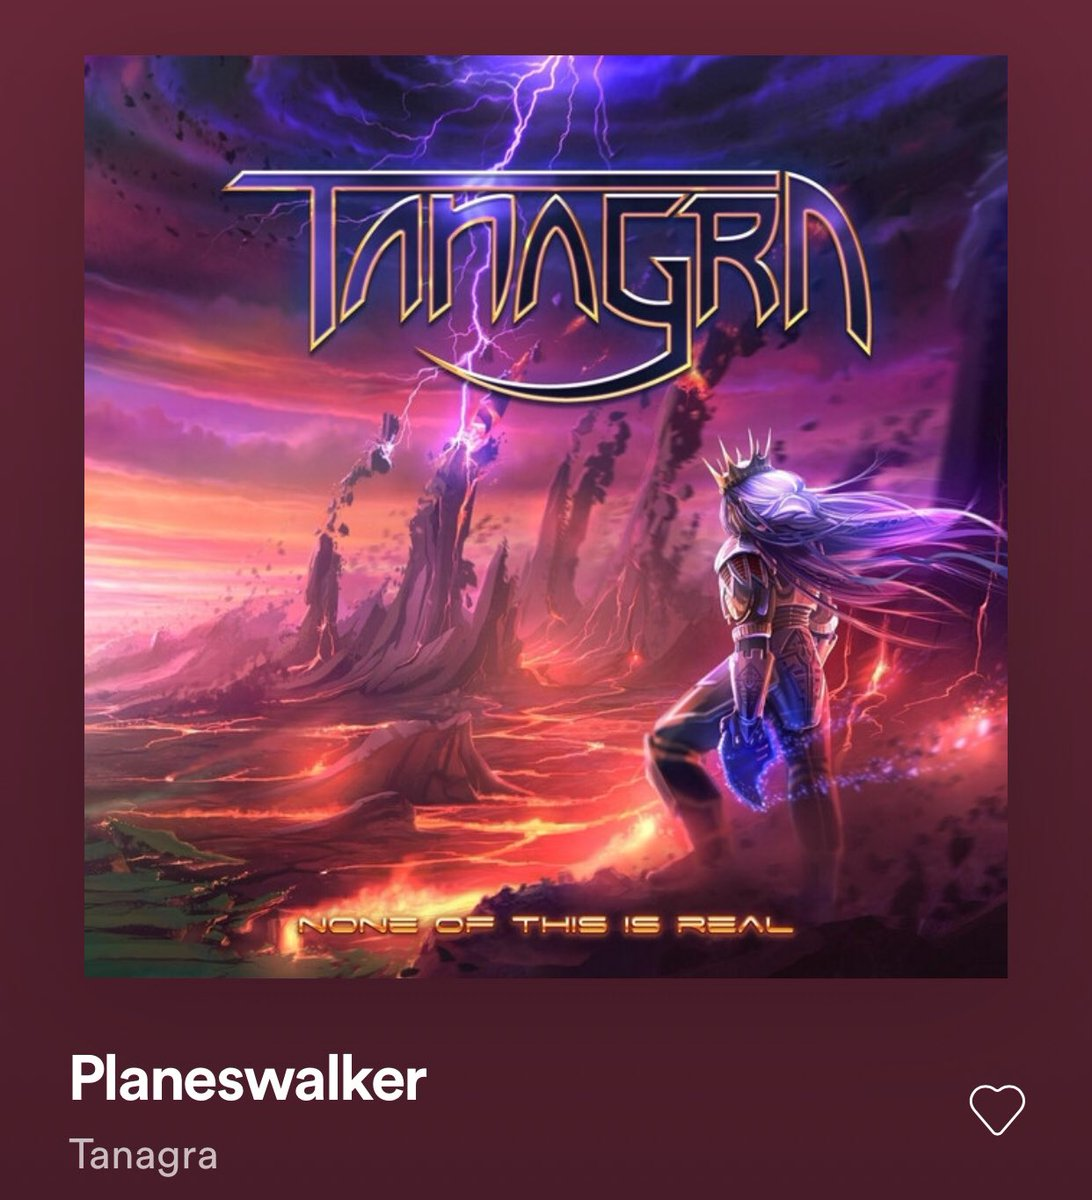 Themaverickgirl Esikaswoman On Twitter Also Here S A Tiny Bit Of Some Mtg Themed Heavy Metal For All Of You Out There Go Give Them Some Love Mtg Mtgkhm Https T Co Sin5gahseq Https T Co Pmm3qohgxs